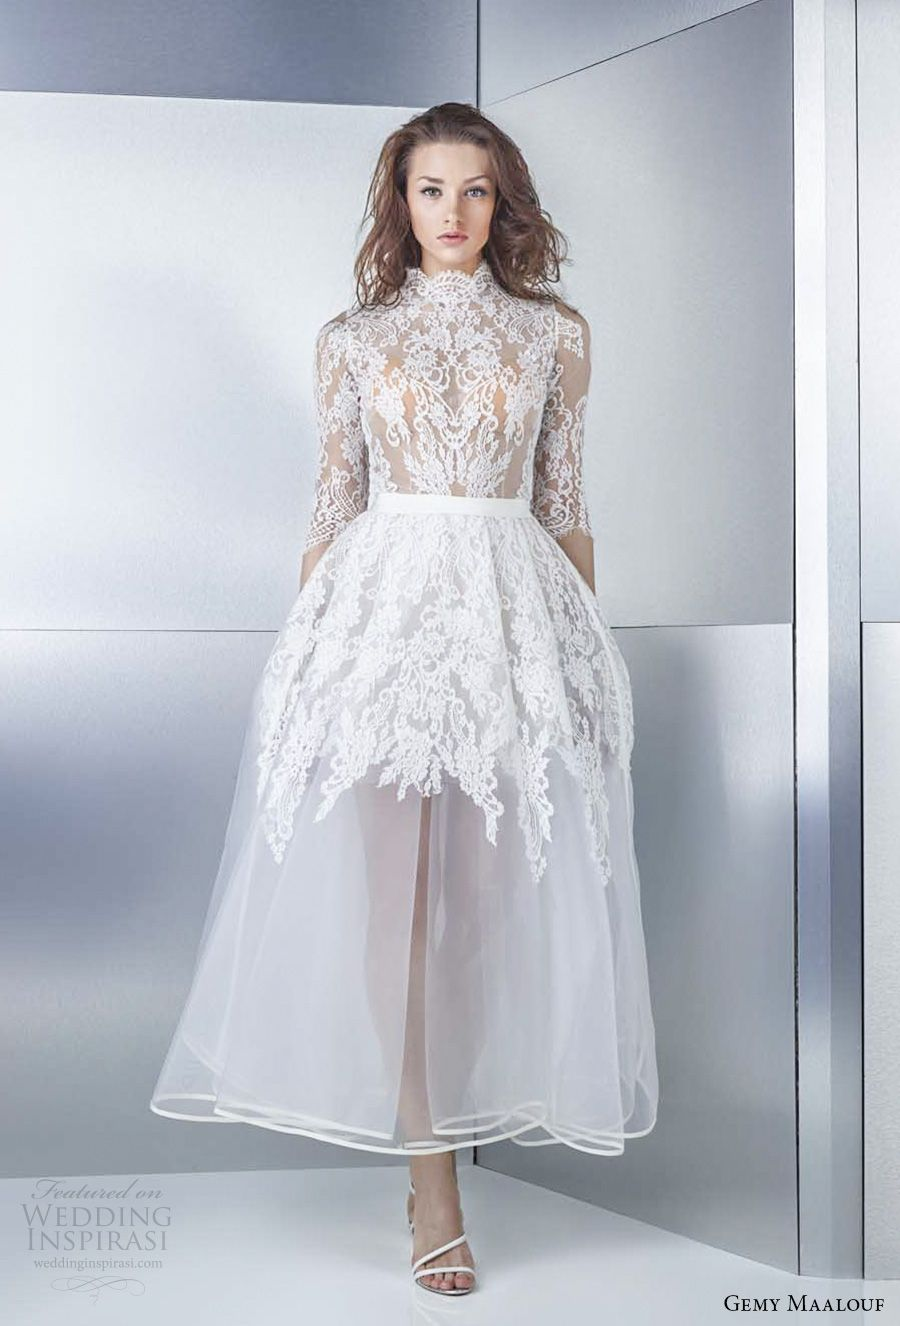 Gemy maalouf wedding dresses short wedding dresses tea